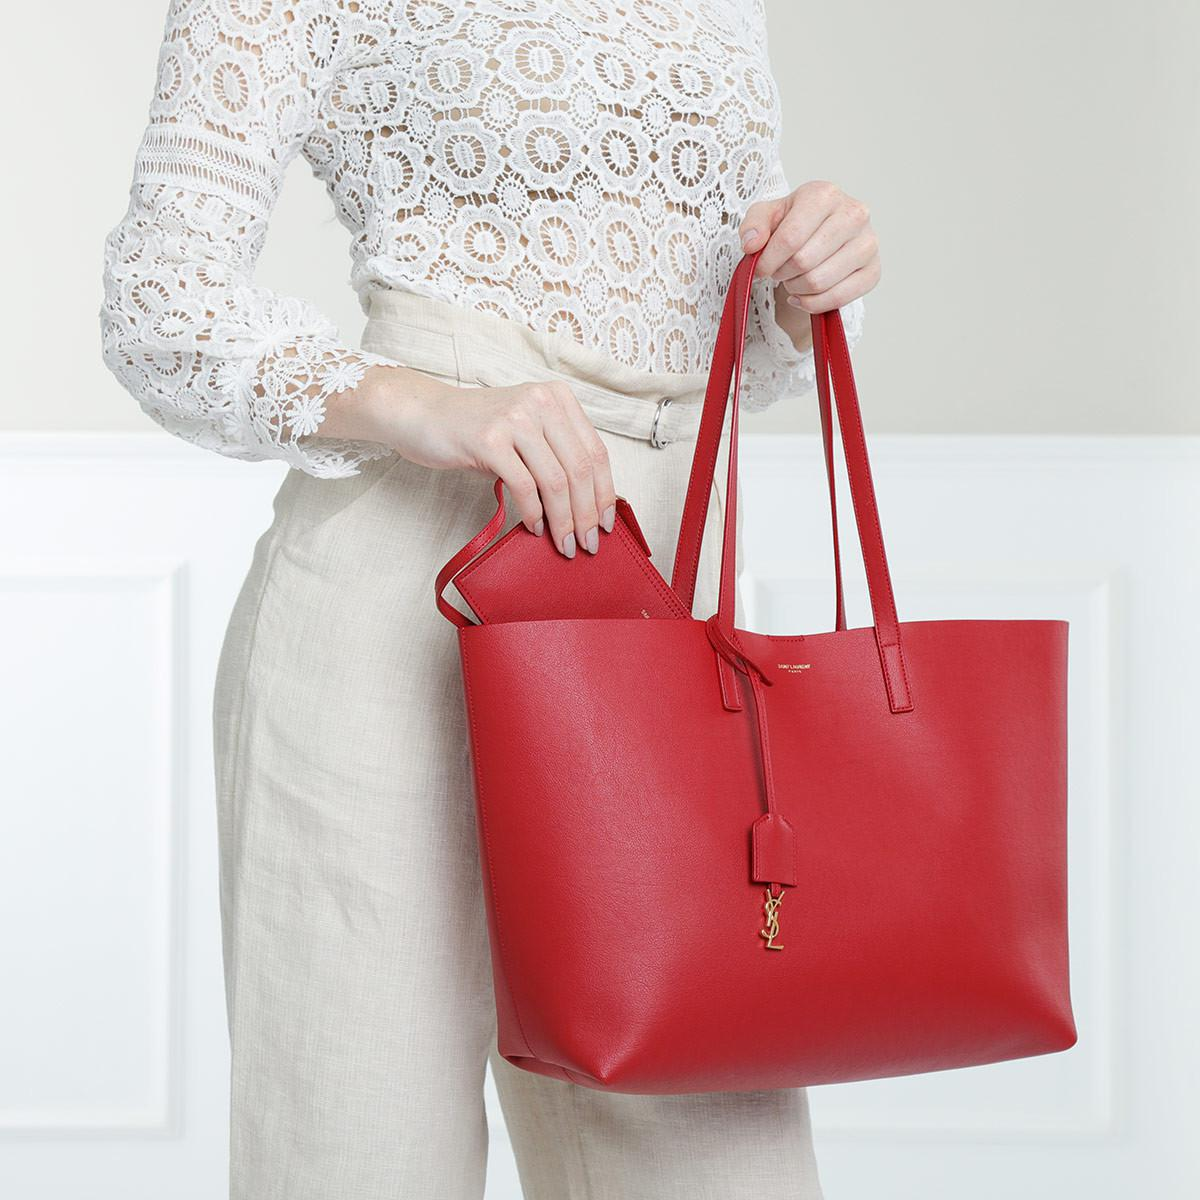 ab8373eff7b Saint Laurent Ysl Large Shopping Bag Rouge Eros in Red - Lyst